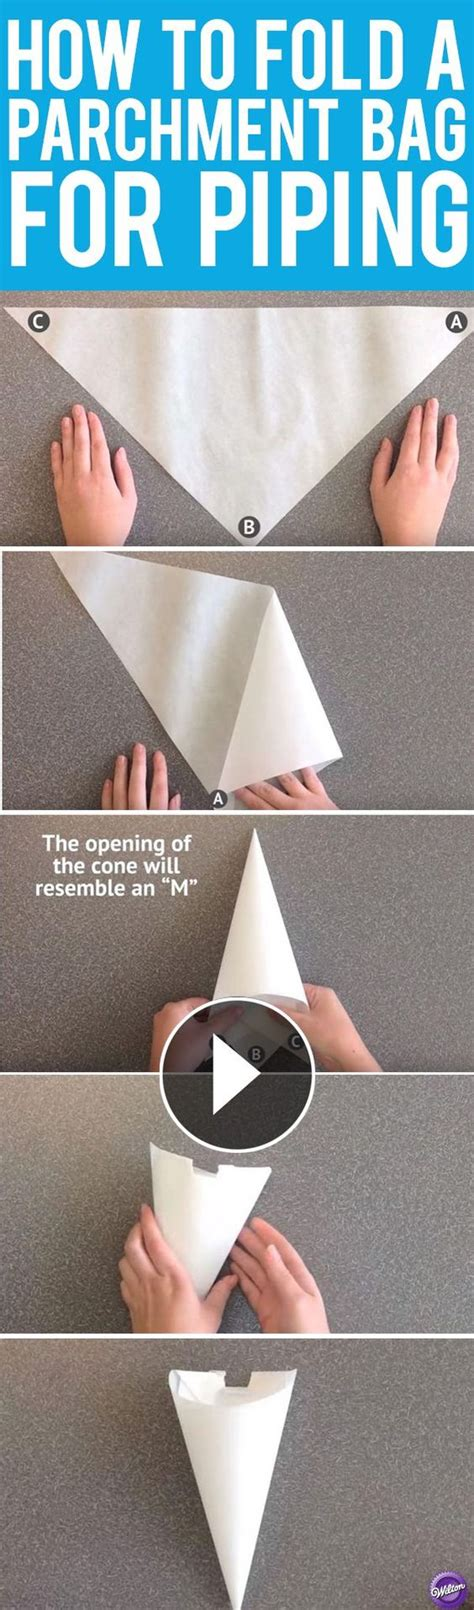 How To Make A Piping Bag Out Of Greaseproof Paper - learn how to make a piping bag out of parchment paper